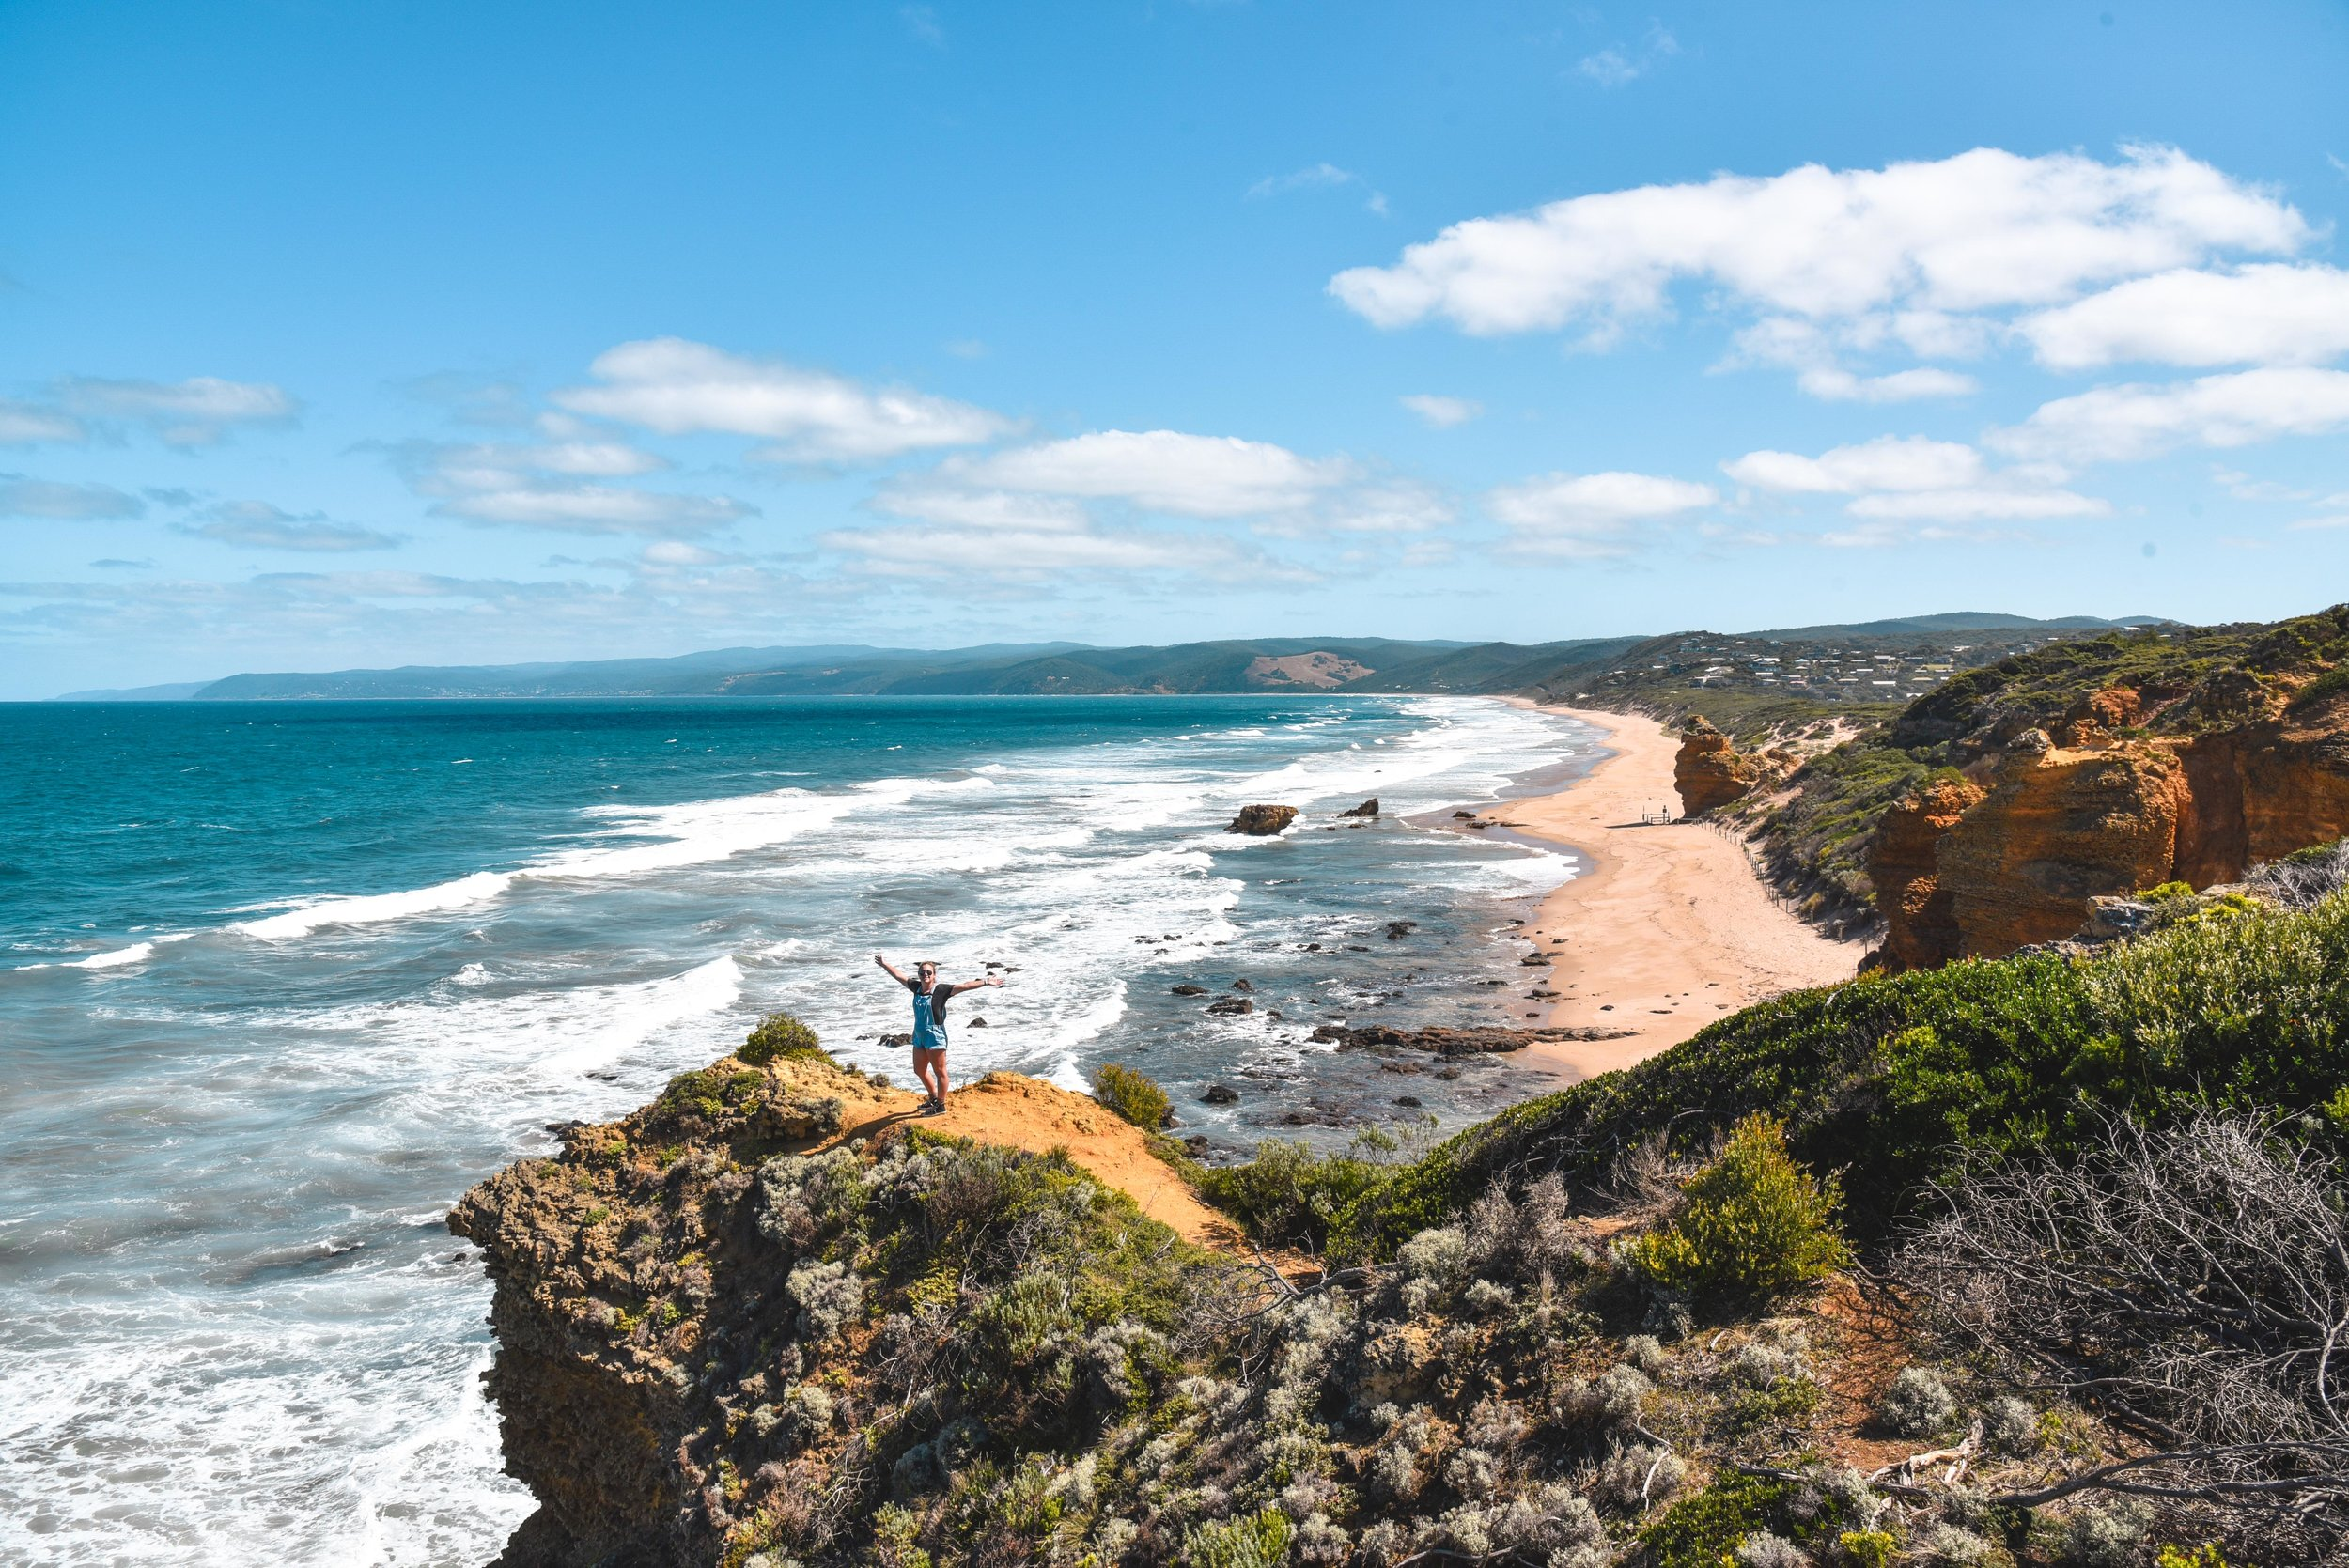 Photo from a road trip down the Great Ocean Road in Melbourne, Australia